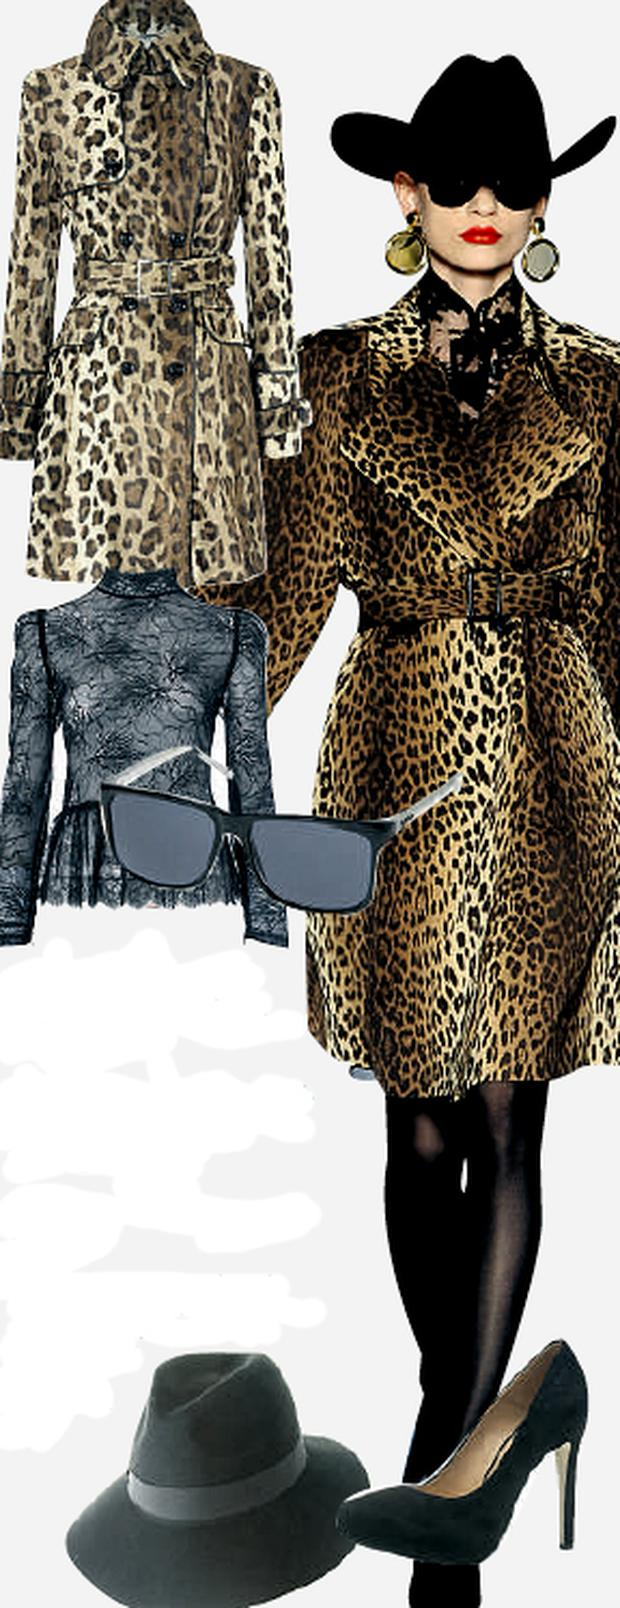 Leopard trench, €499 at Karen Millen; Lace blouse, €62 at Oasis; Wide-brim fedora, €29.12 at Asos.com; Sunglasses, €46, and suede heels, €99, both at Topshop.com